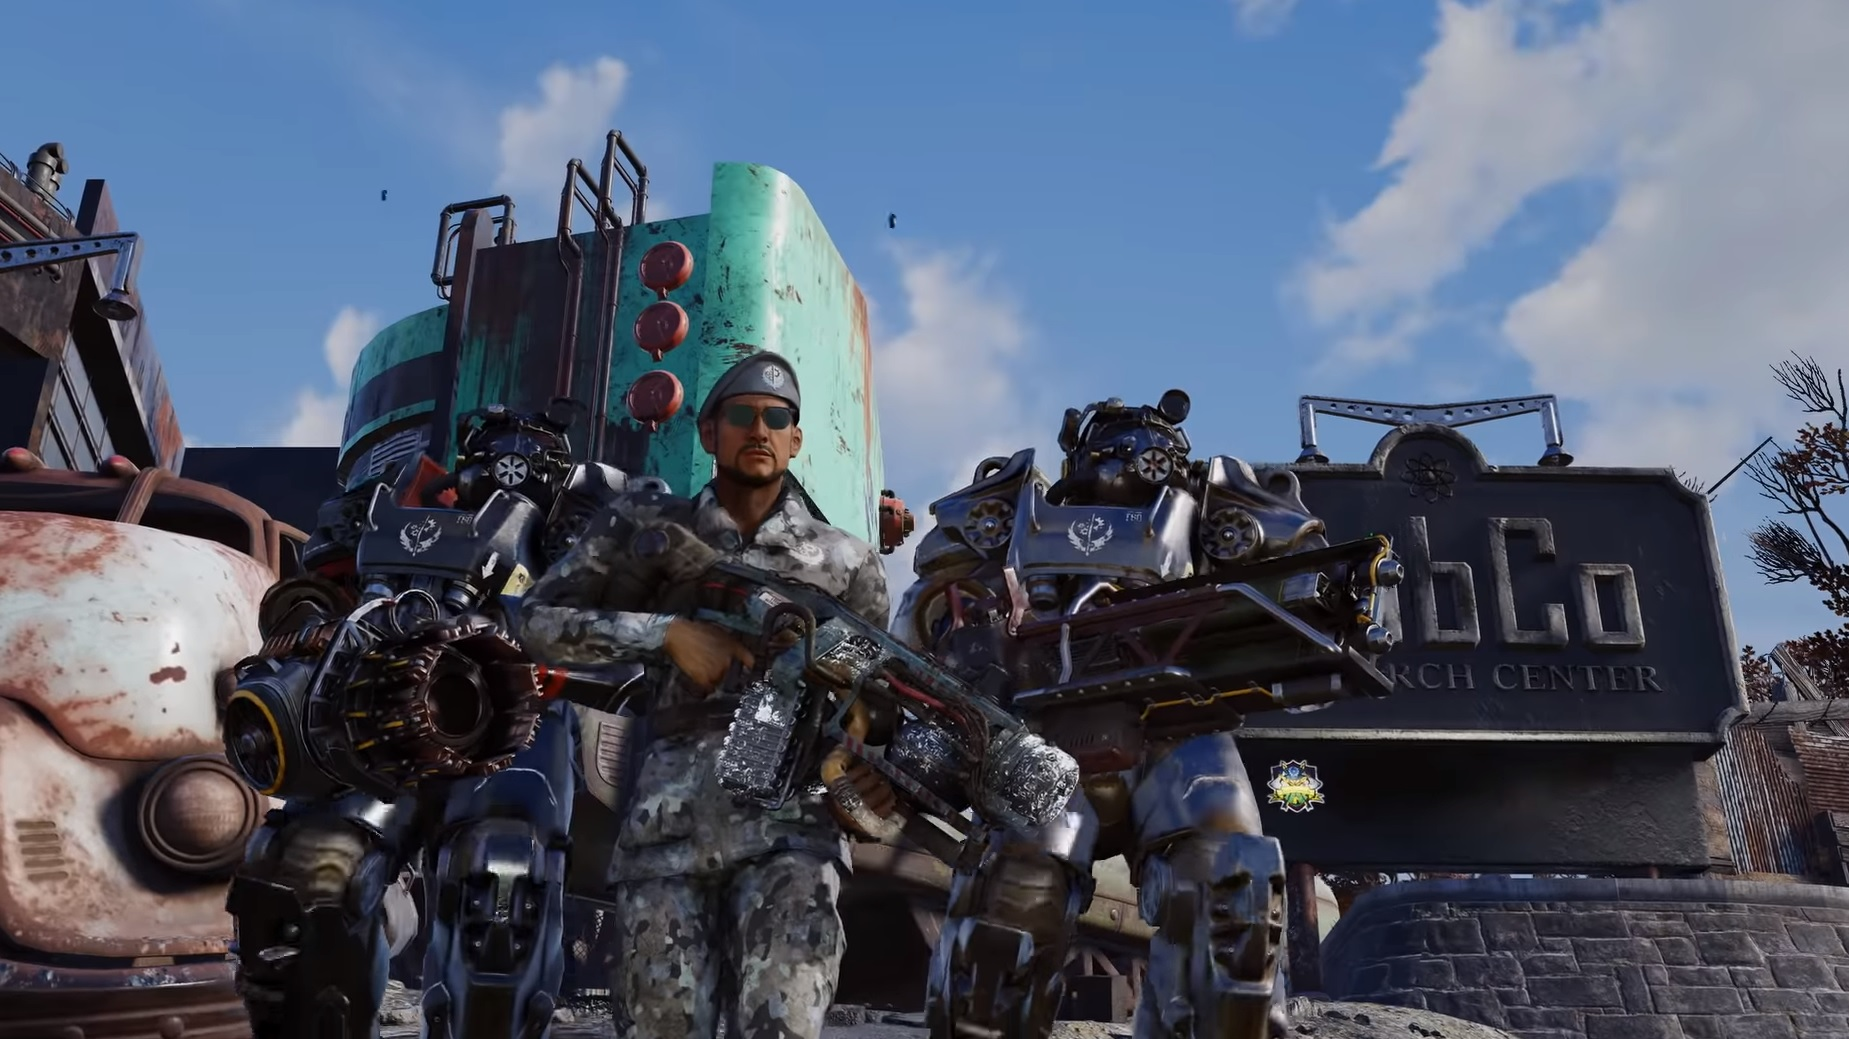 Two Brotherhood Of Steel soldiers in massive power armour standing either side of an officer in fatigues